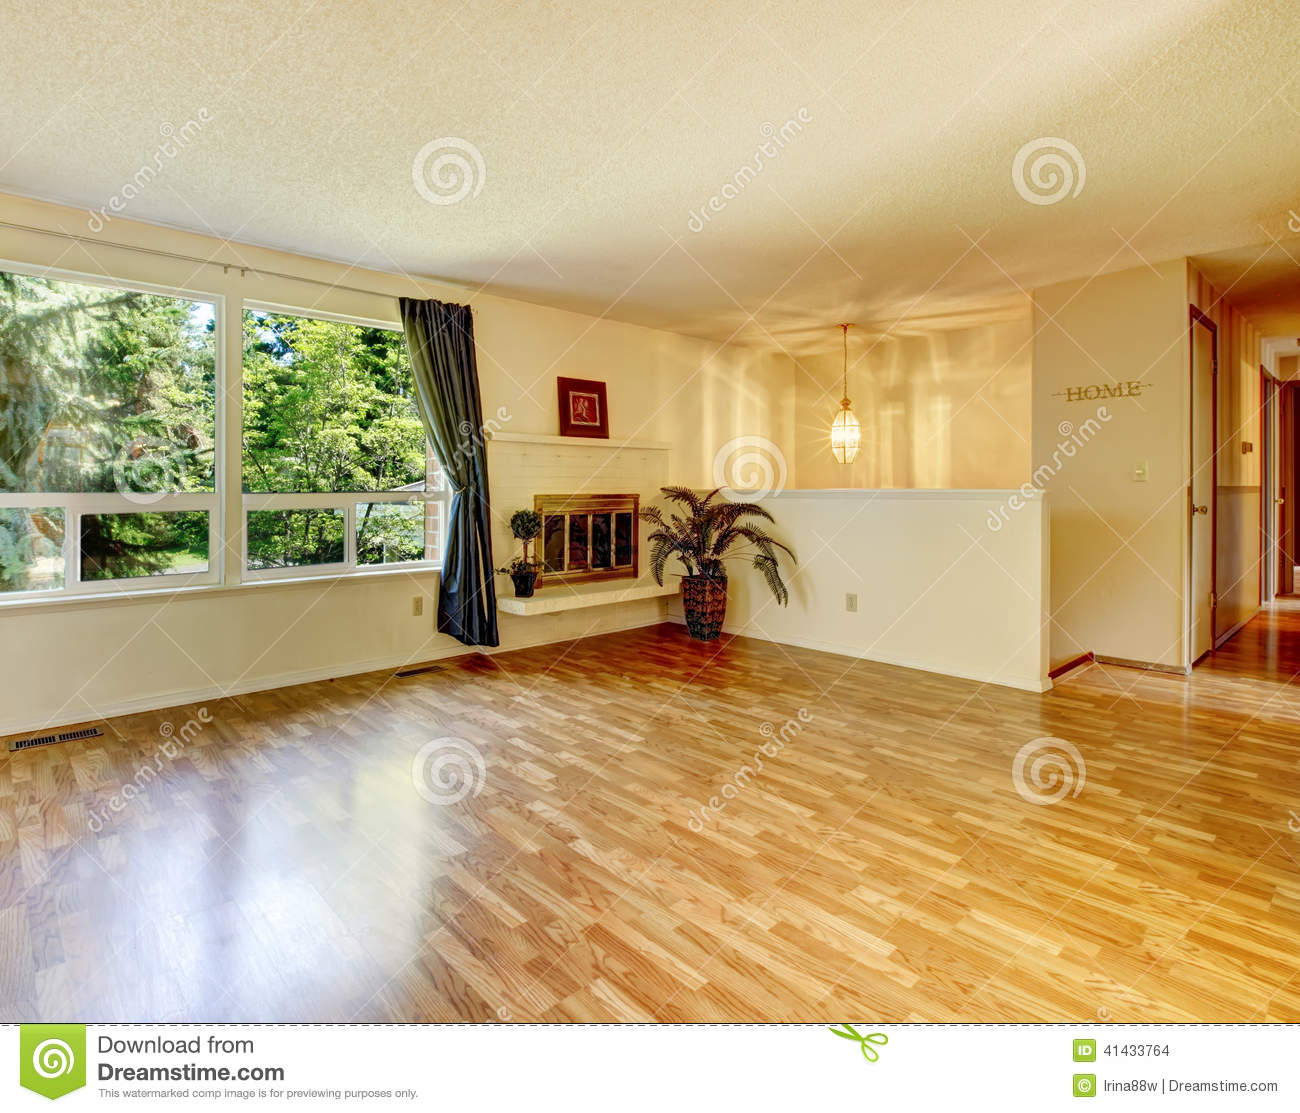 Empty Living Room: Empty Living Room With Fireplace And Shiny Hardwood Floor